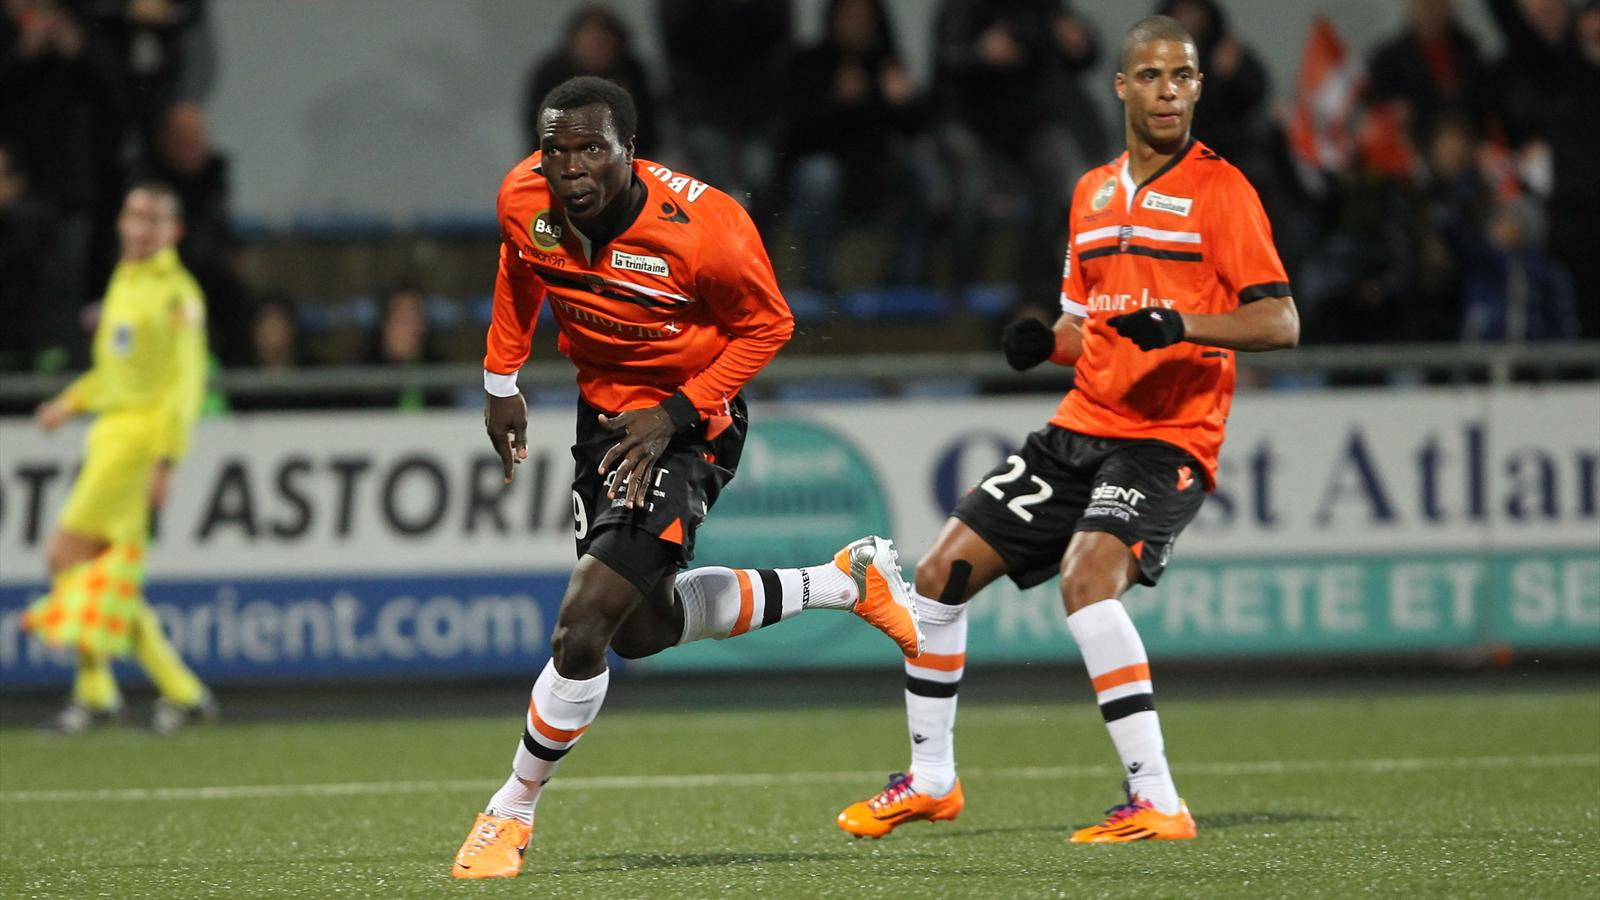 Match lorient nice en direct streaming live ibuzz365 for Lorient match